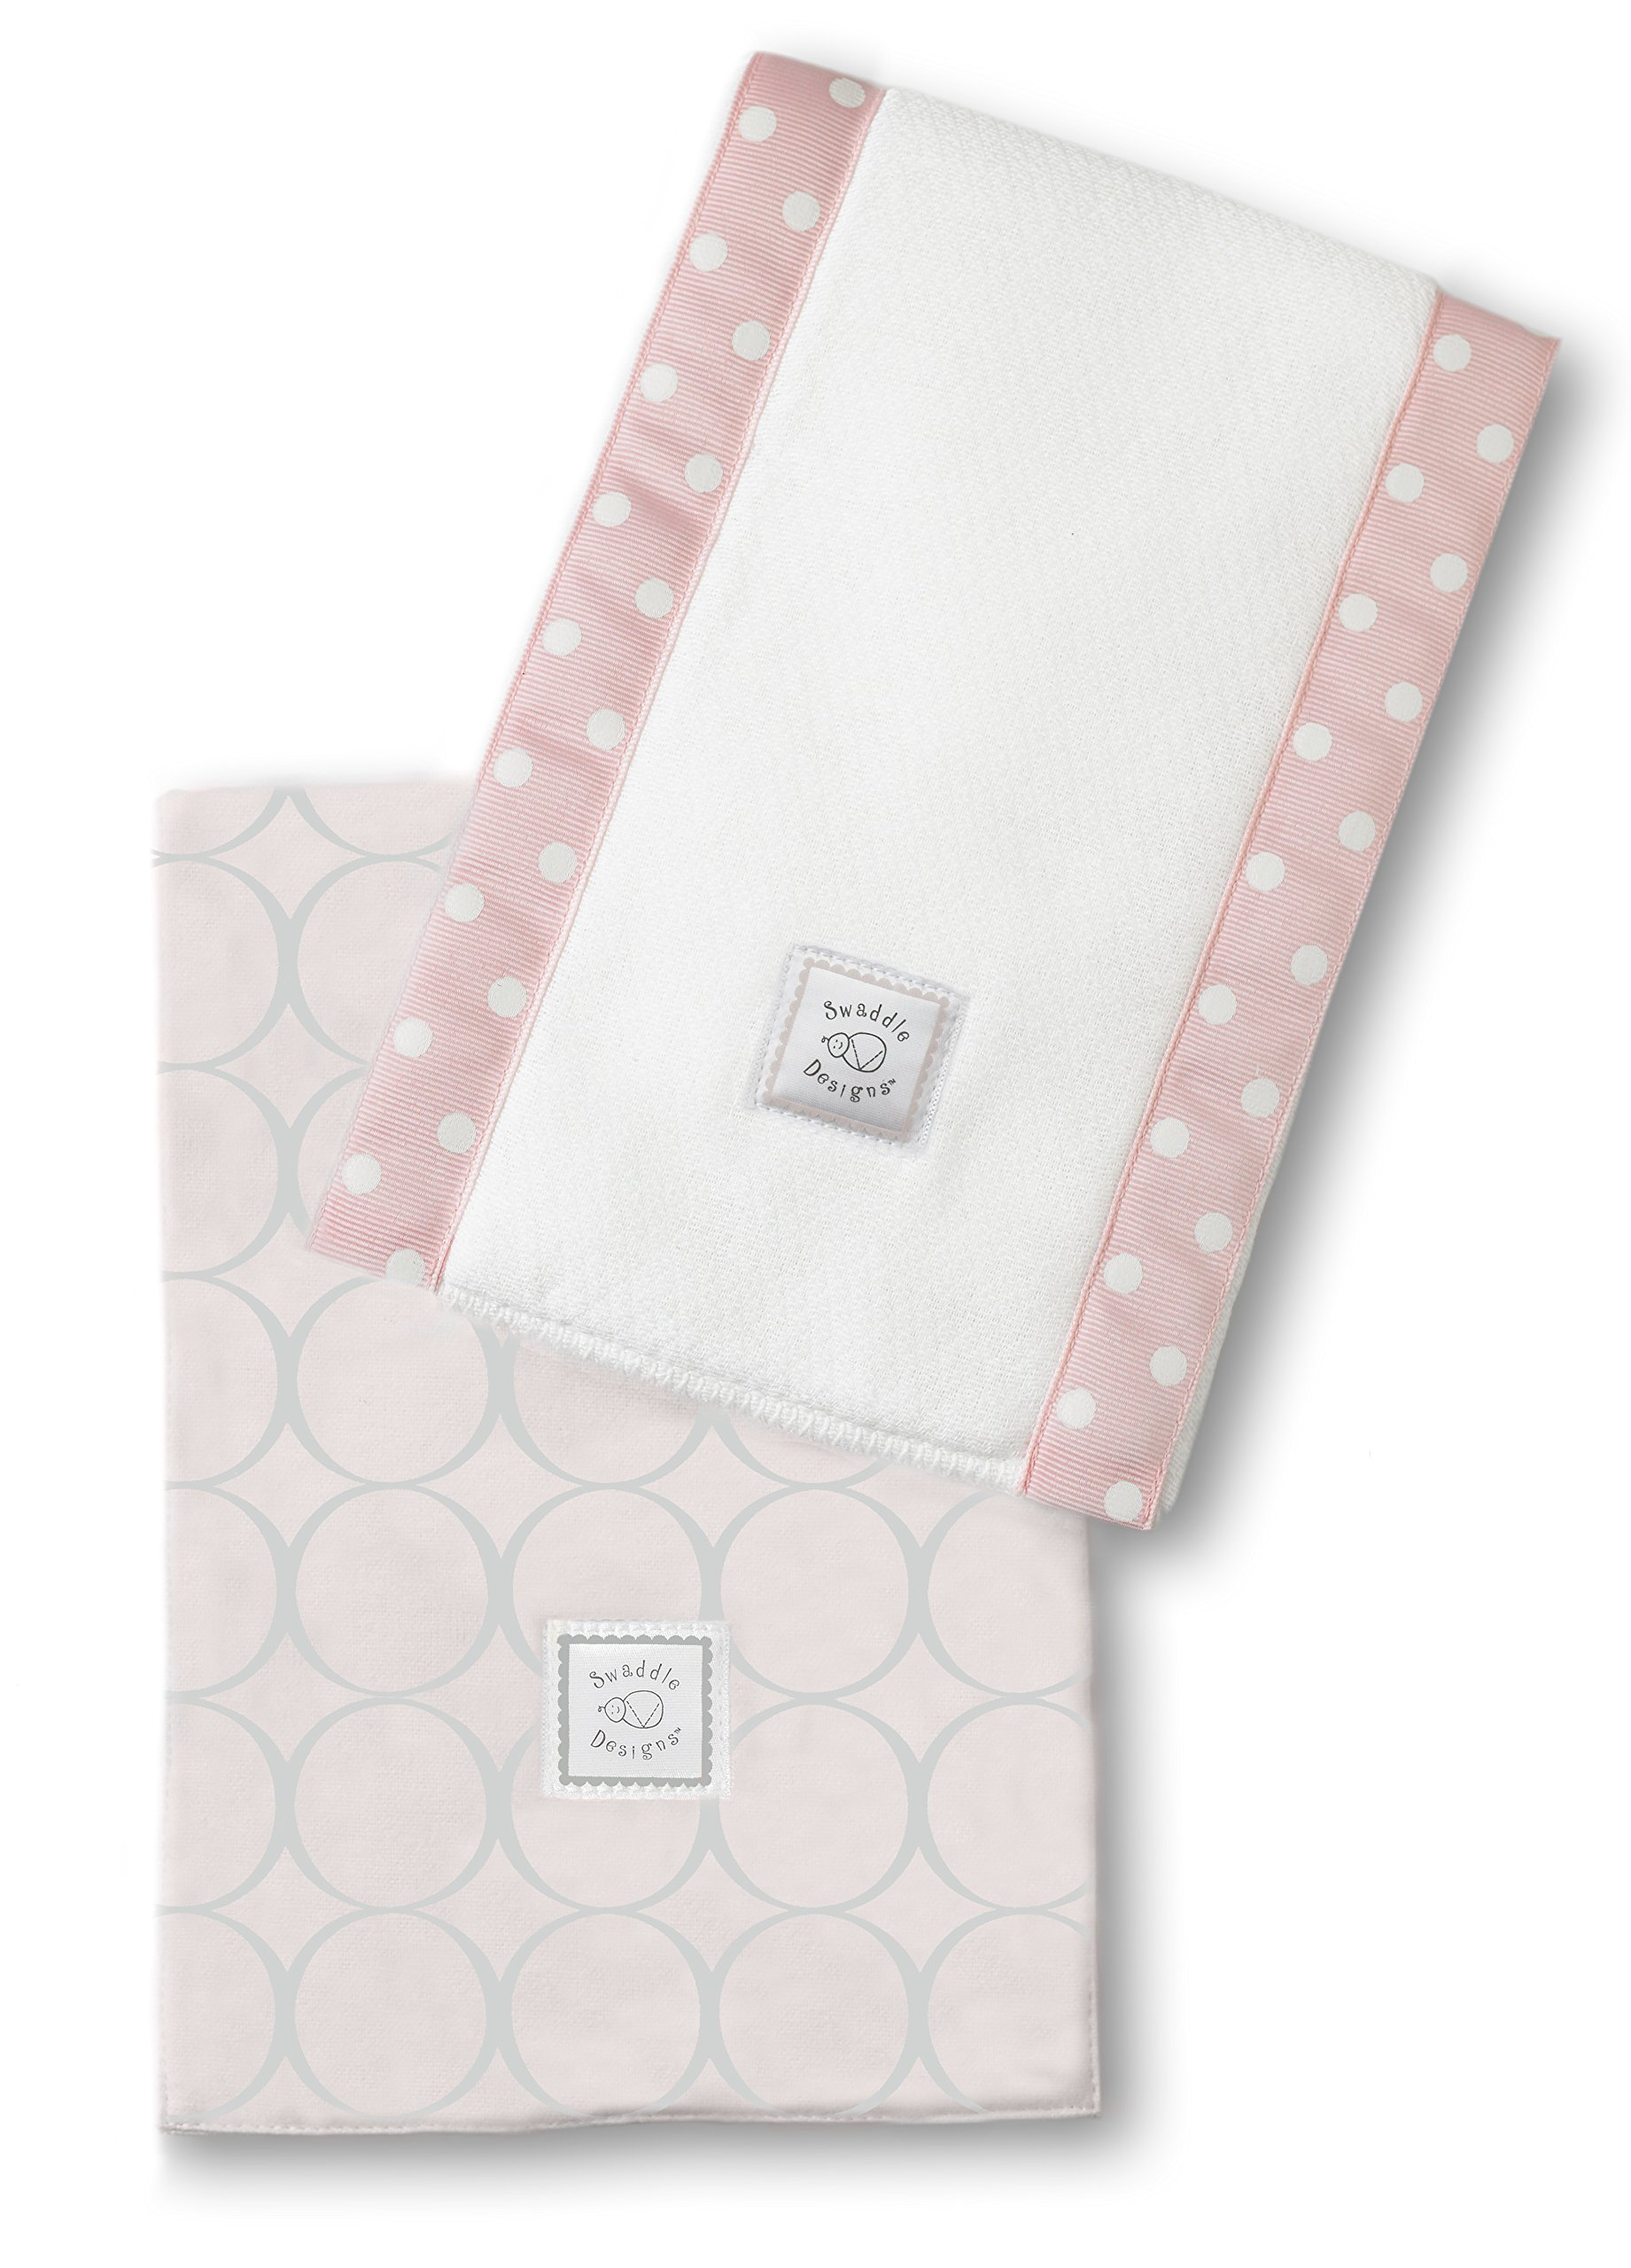 SwaddleDesigns Baby Burpies, Set of 2 Cotton Burp Cloths, Sterling Mod Circles on Sunwashed Pink by SwaddleDesigns